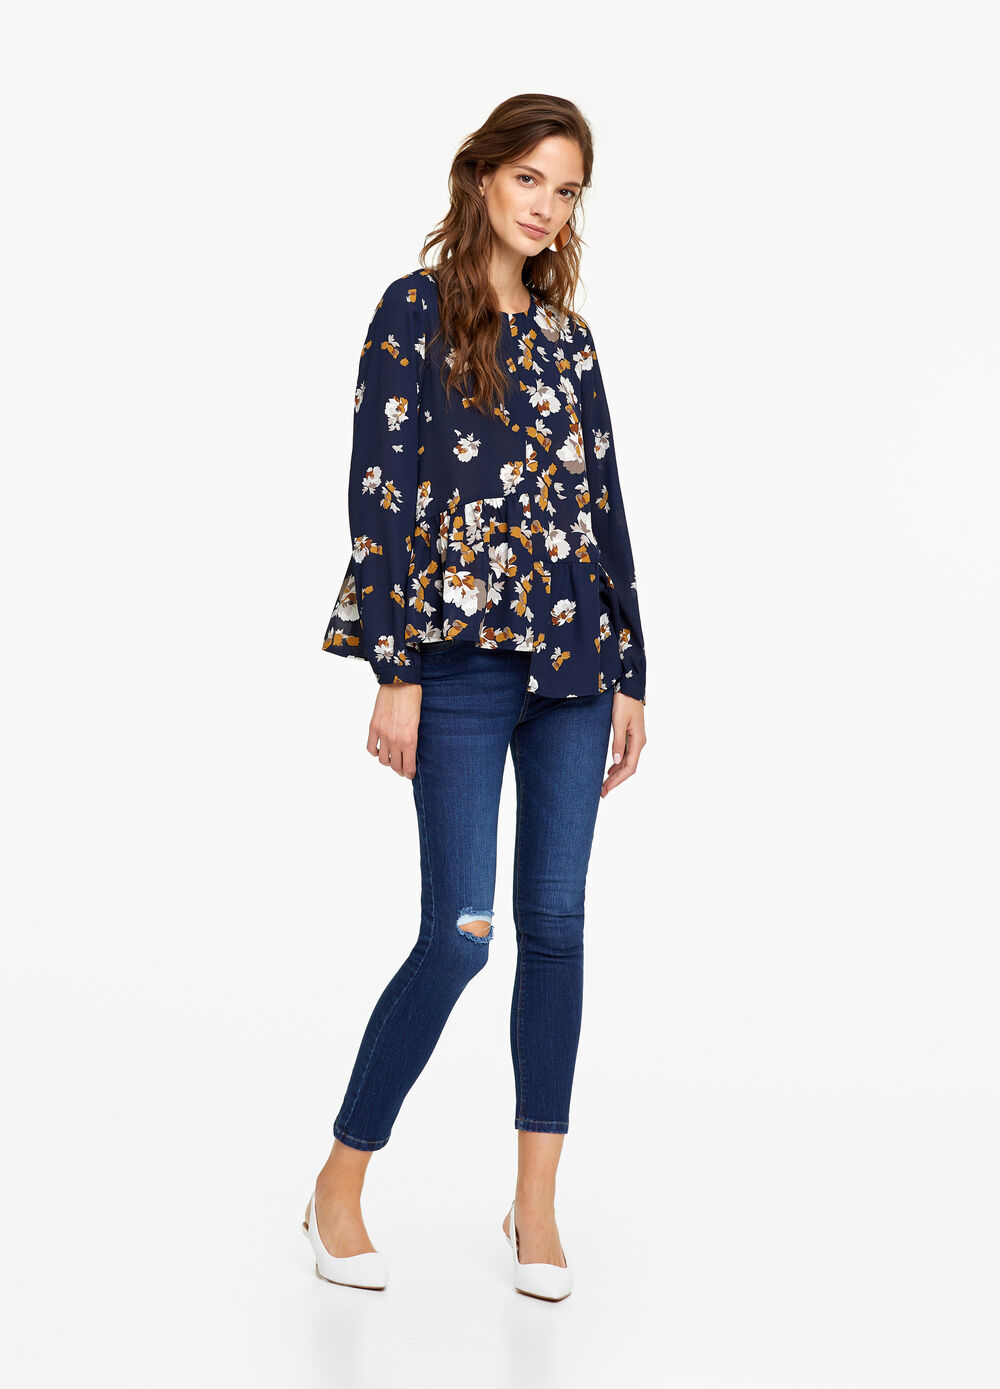 Floral patterned blouse with flounce